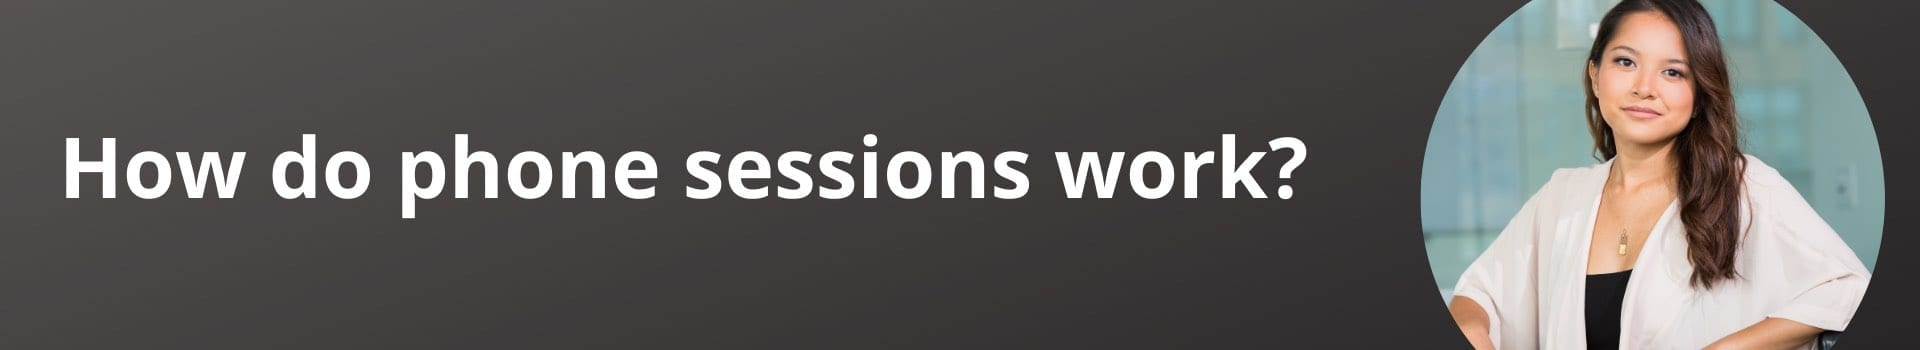 How do phone sessions work?